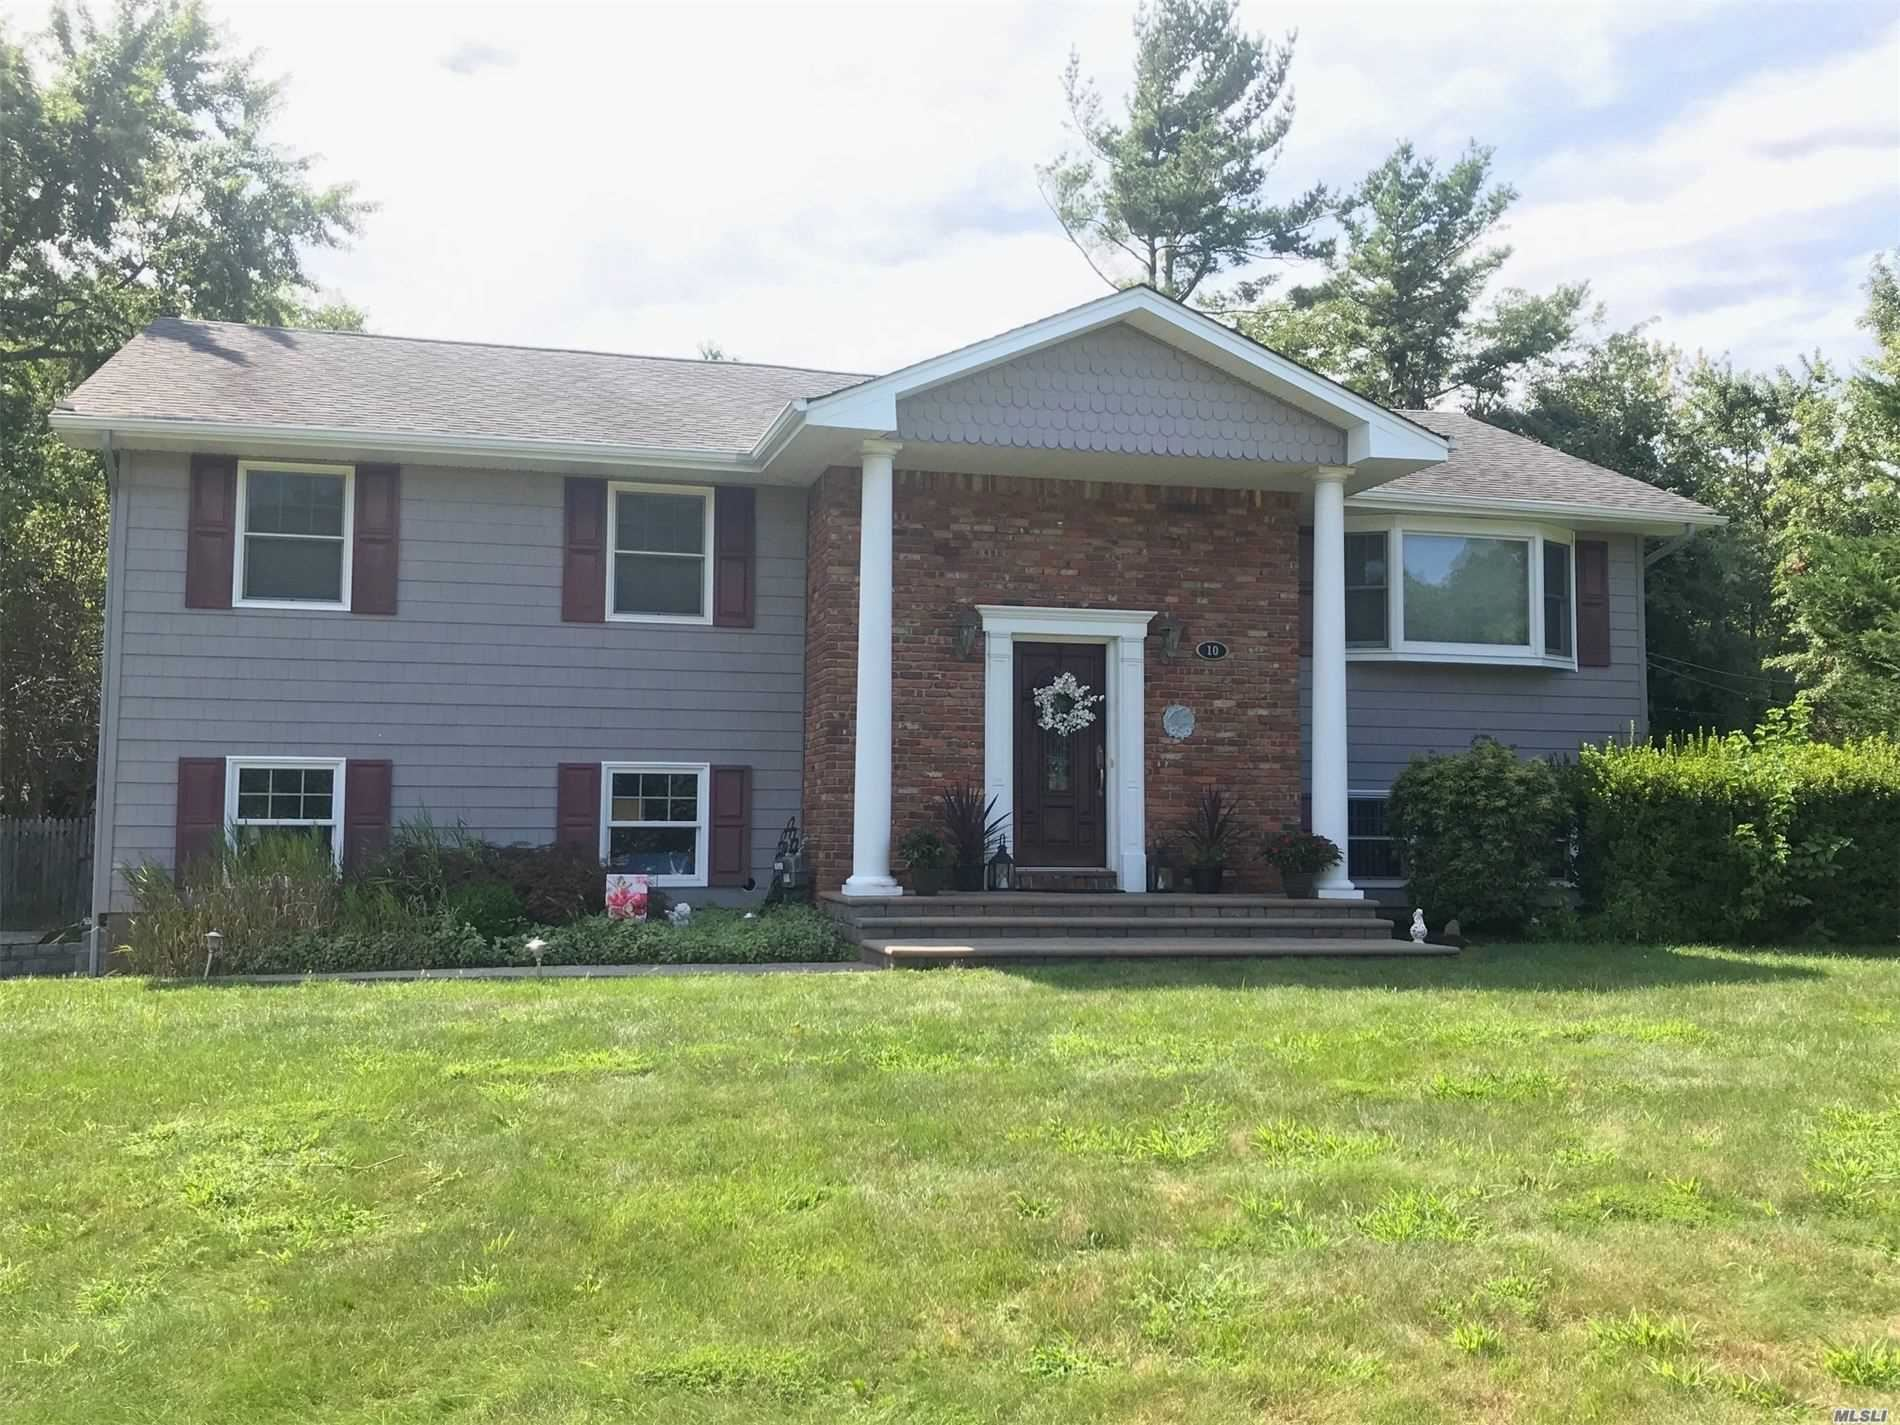 10 Coconut Drive, Commack, NY 11725 - MLS#: 3247939